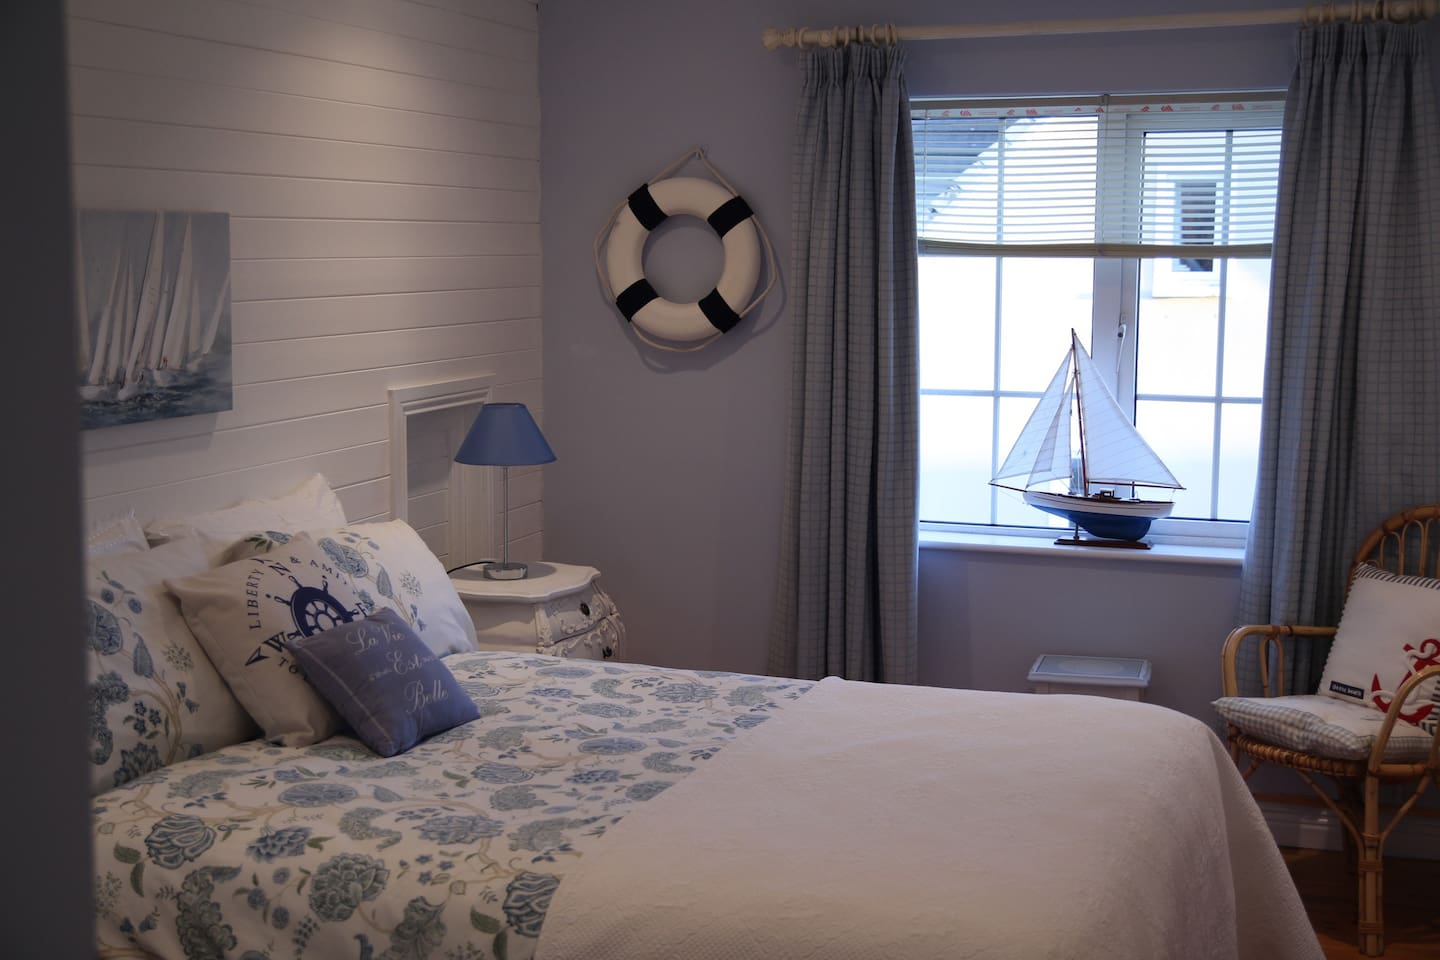 Bedroom containing a double bed.